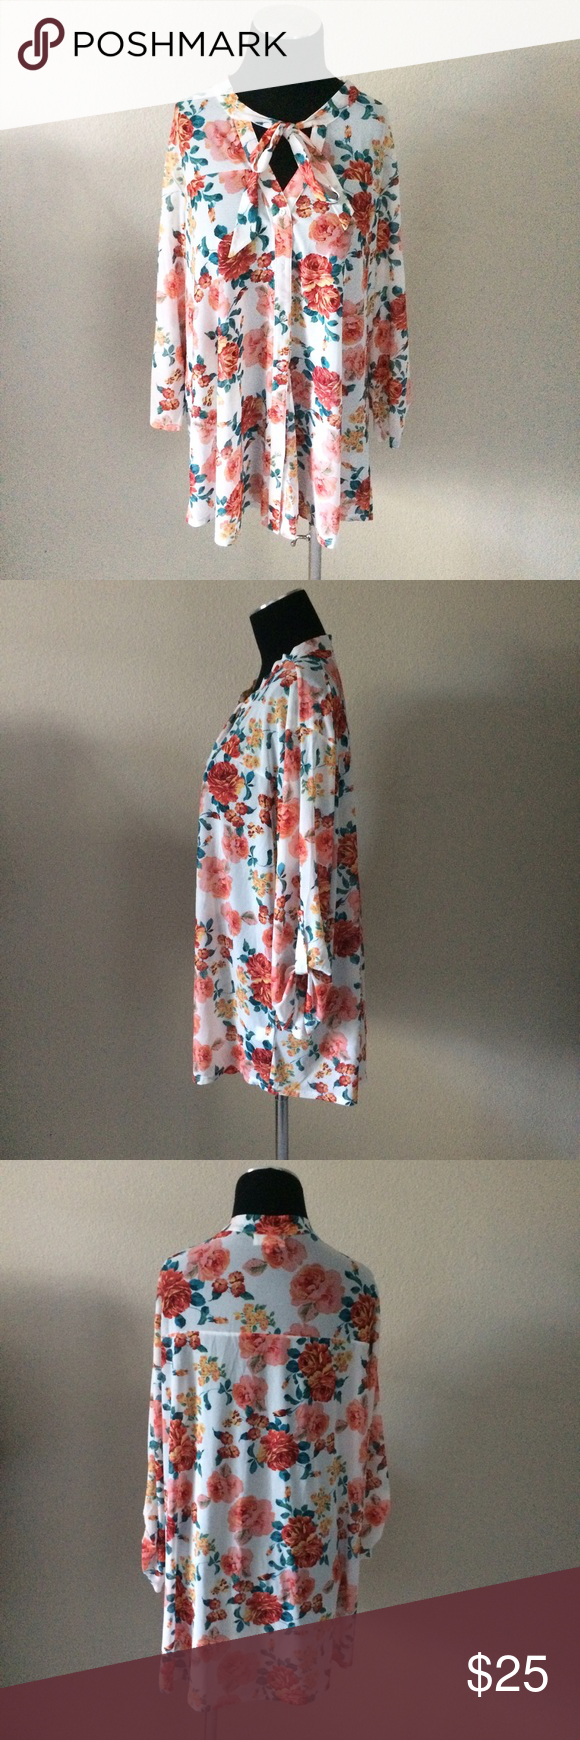 3x floral tie neck blouse 3x floral tie neck blouse. NWT . Lightweight meshlike stretch material. Can model if needed Tops Blouses